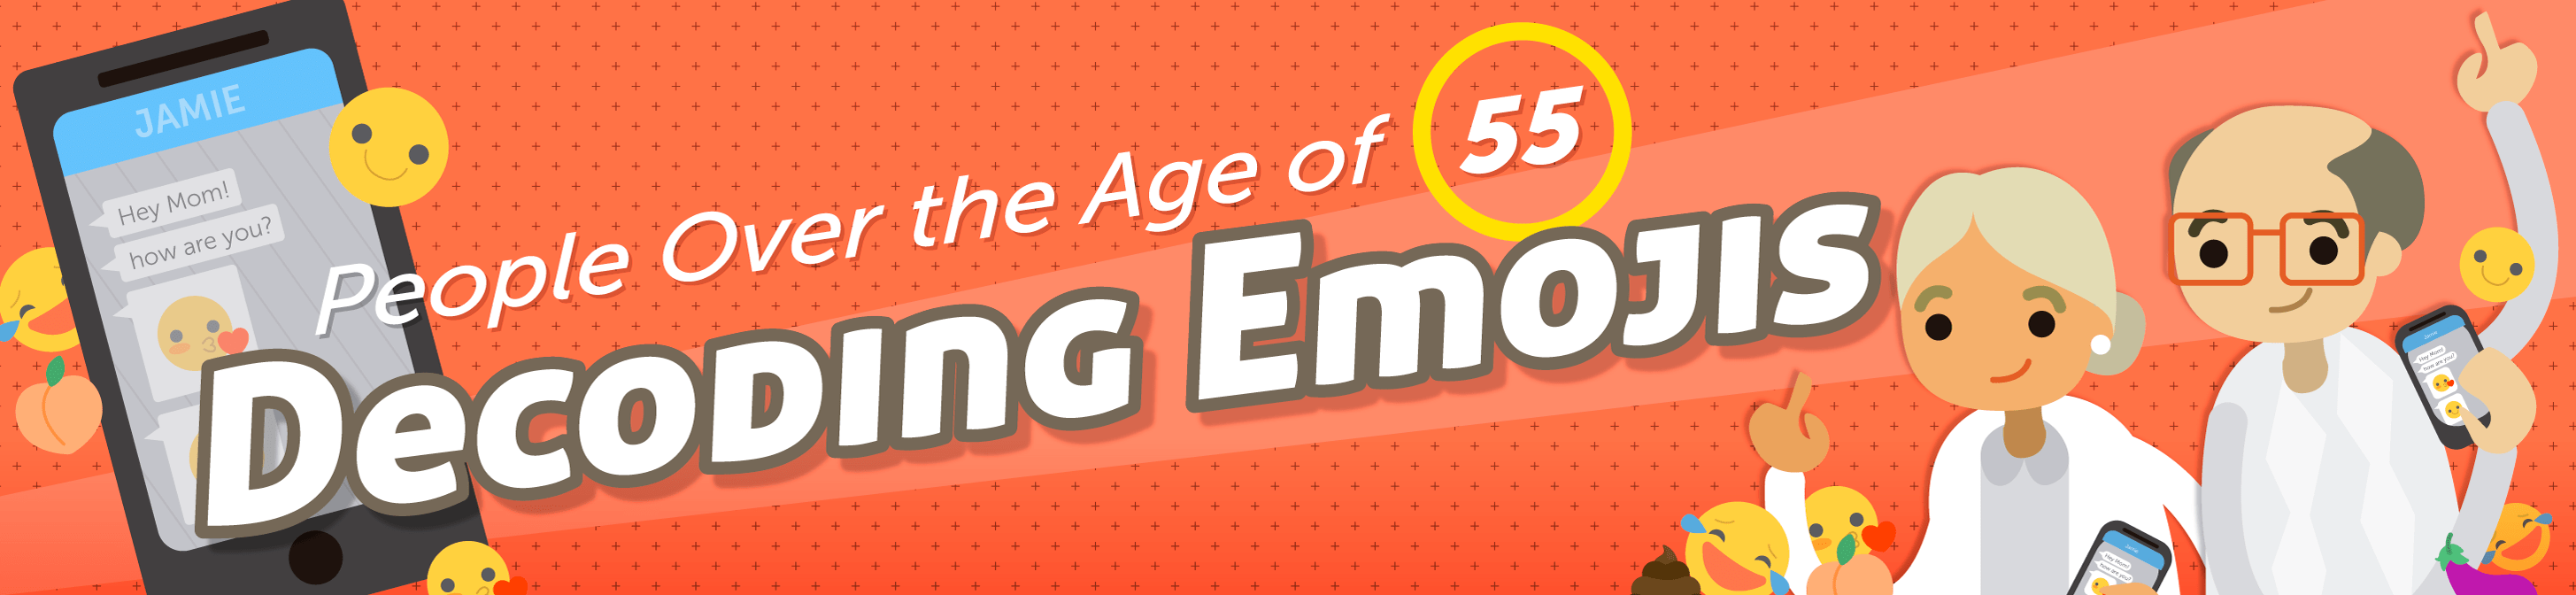 Interpreting Emojis - Do you know what the eggplant emoji means? Neither do these people.